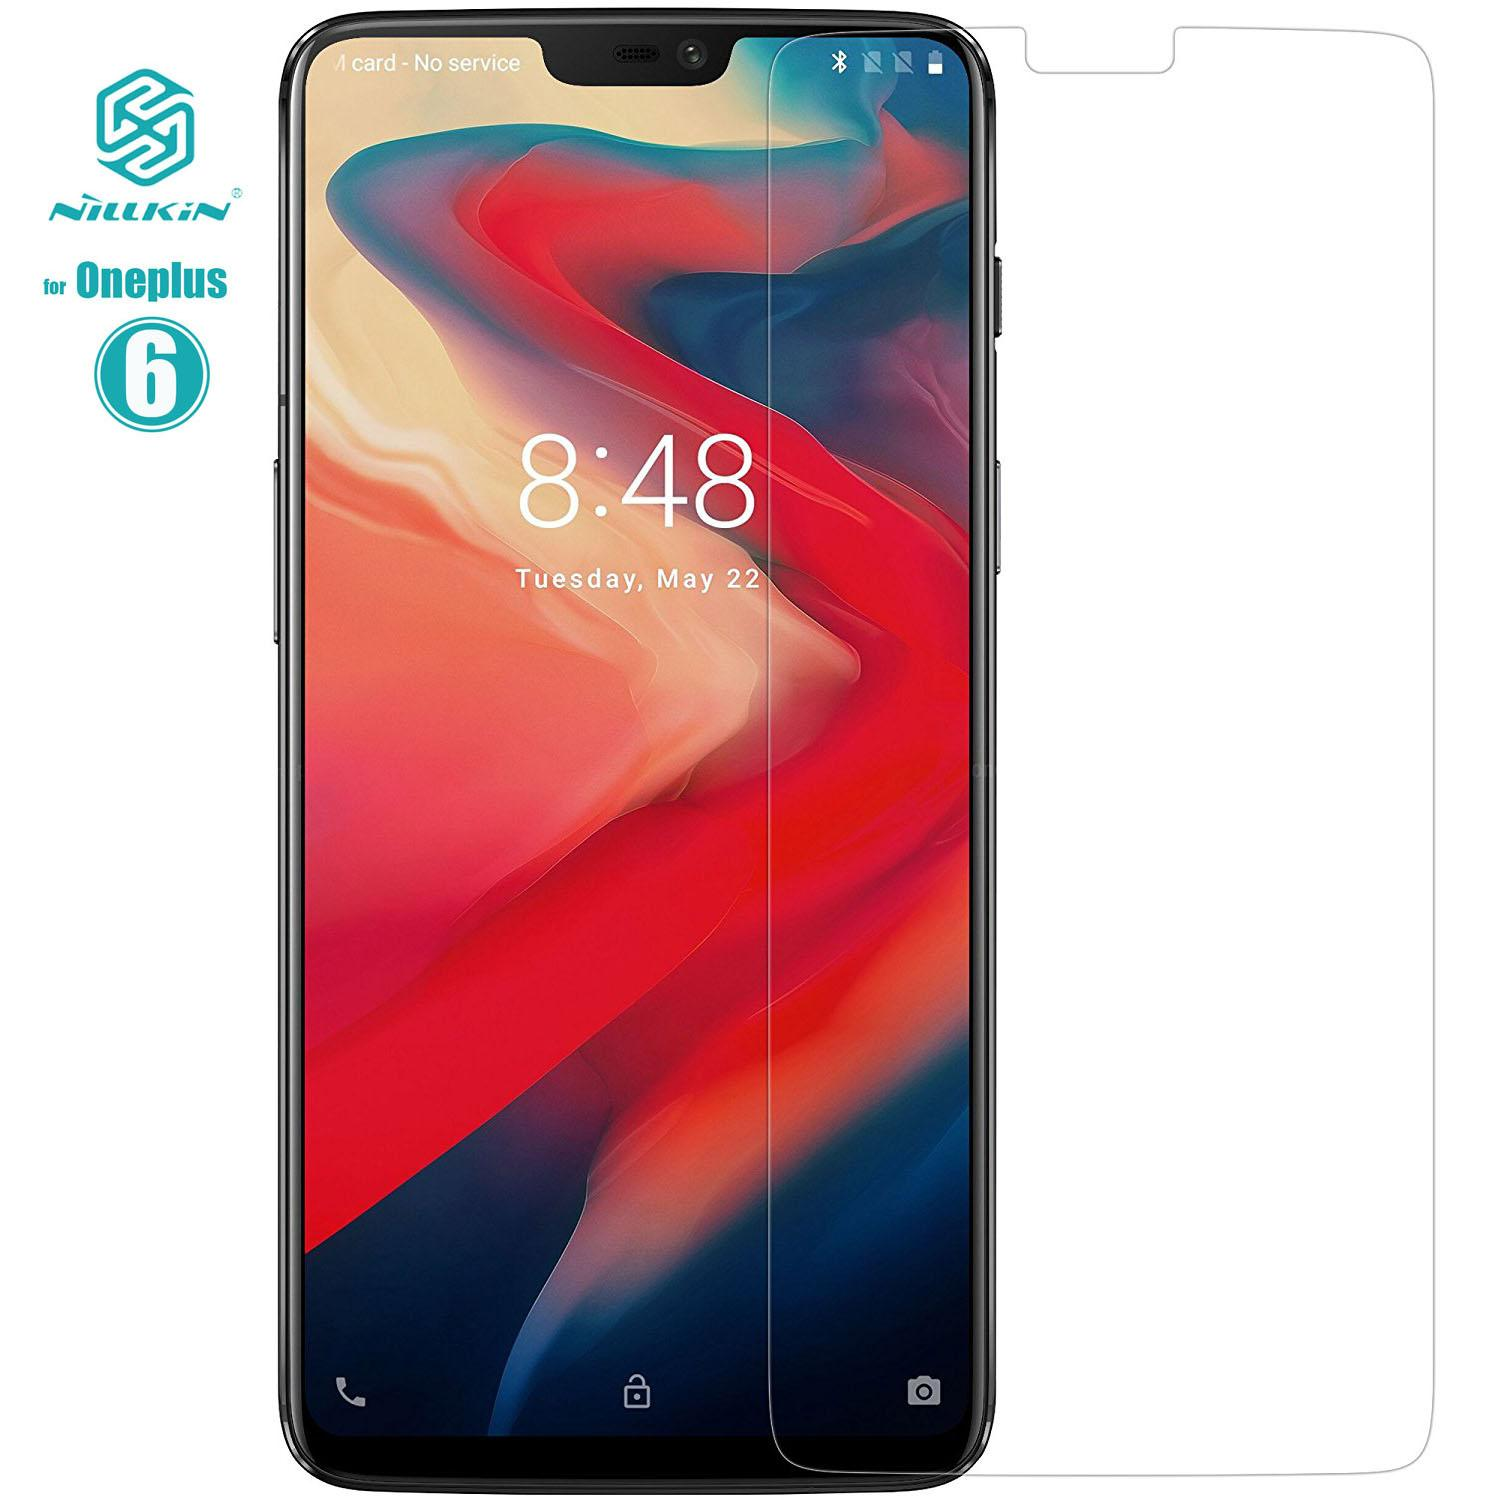 Buy Nillkin Phone Cases Accessories Anti Explosion H Xiaomi Redmi Note 2 Tempered Screen Guard Oneplus 6 Protector Pro Glass 02mm 25d